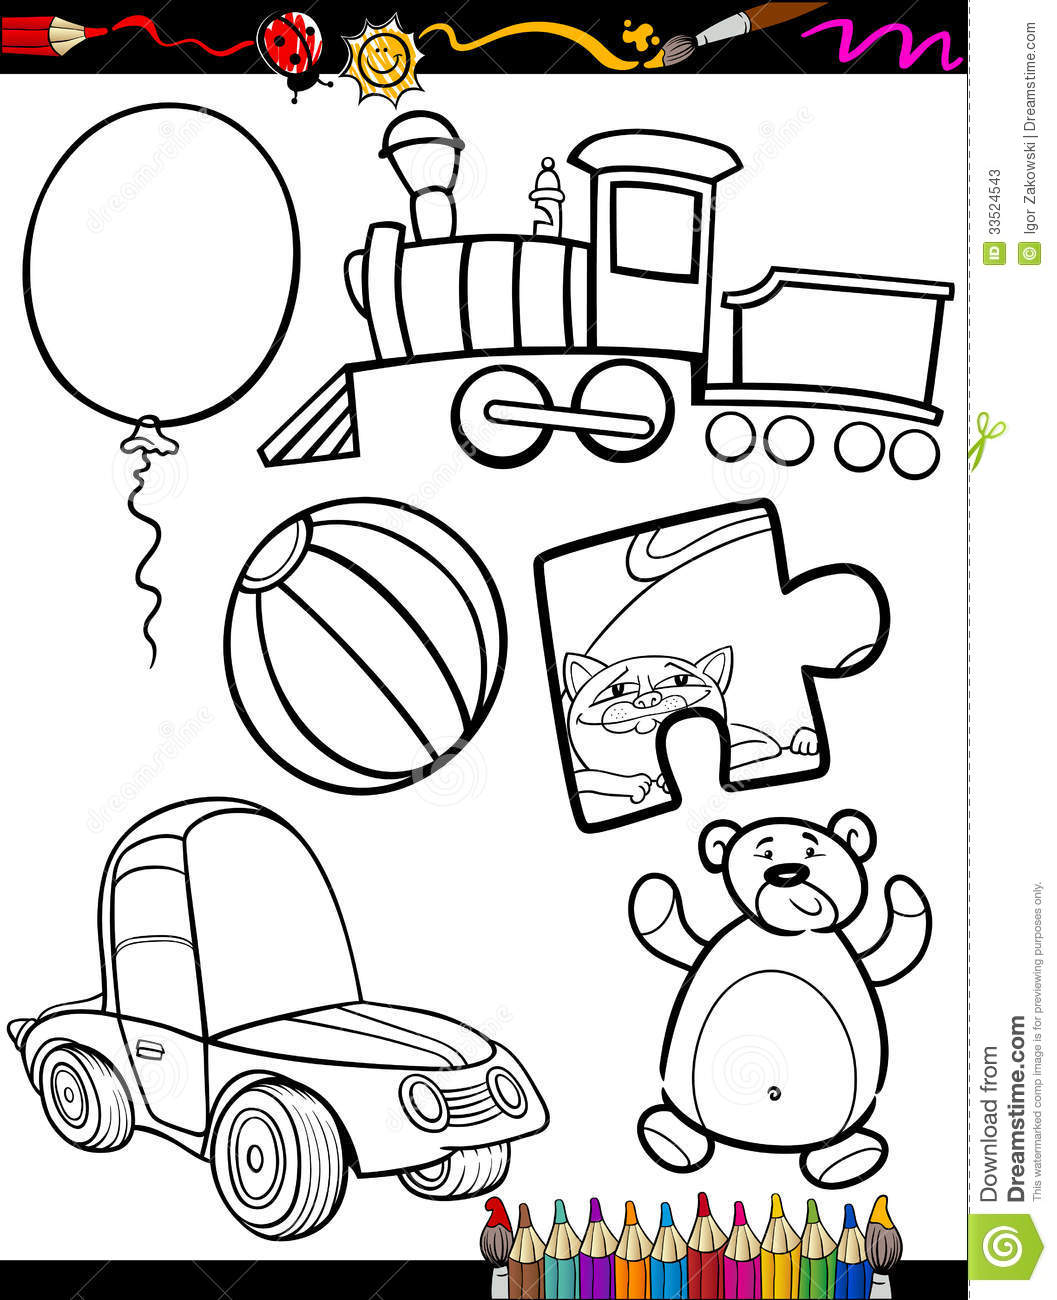 Toy Story Character Named Hamm Coloring Pages